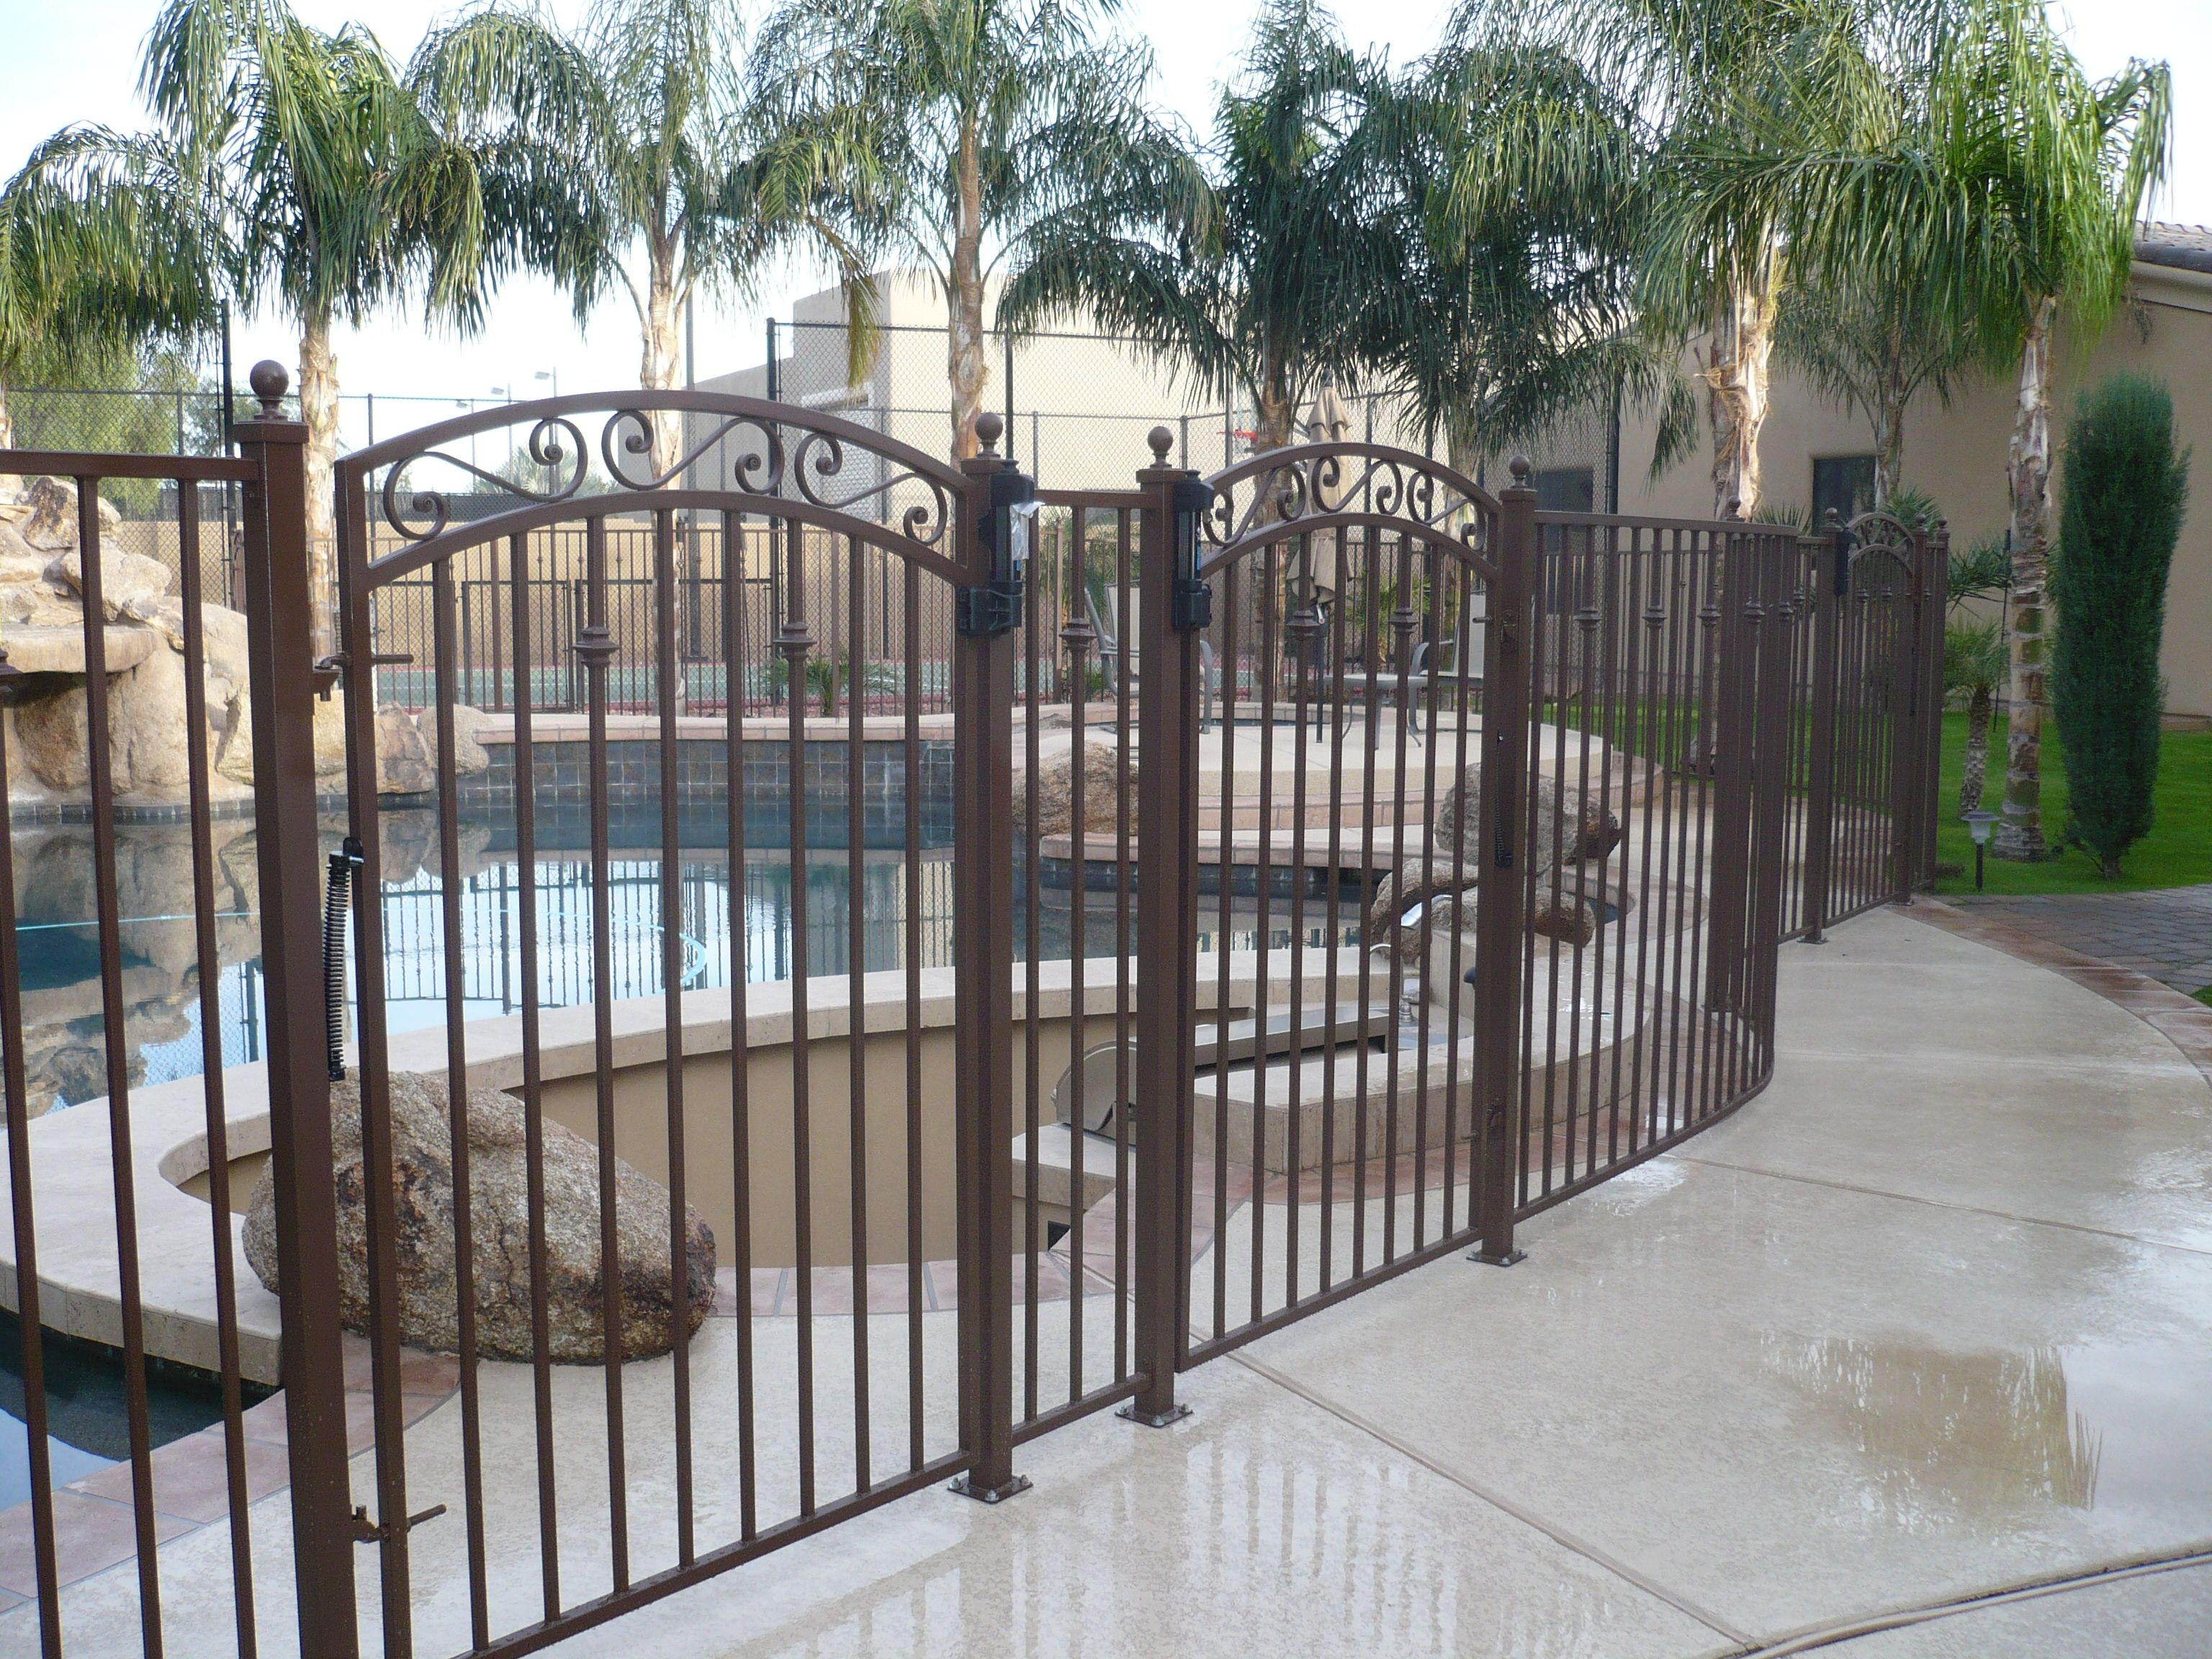 wrought iron fence gate. We Chose To Go With This Wrought-Iron Pool Fence - Rust Powder-coat, Curved Fence, Knuckle Design, Balls On Posts, Arched Gate W/ Scroll Design And Wrought Iron